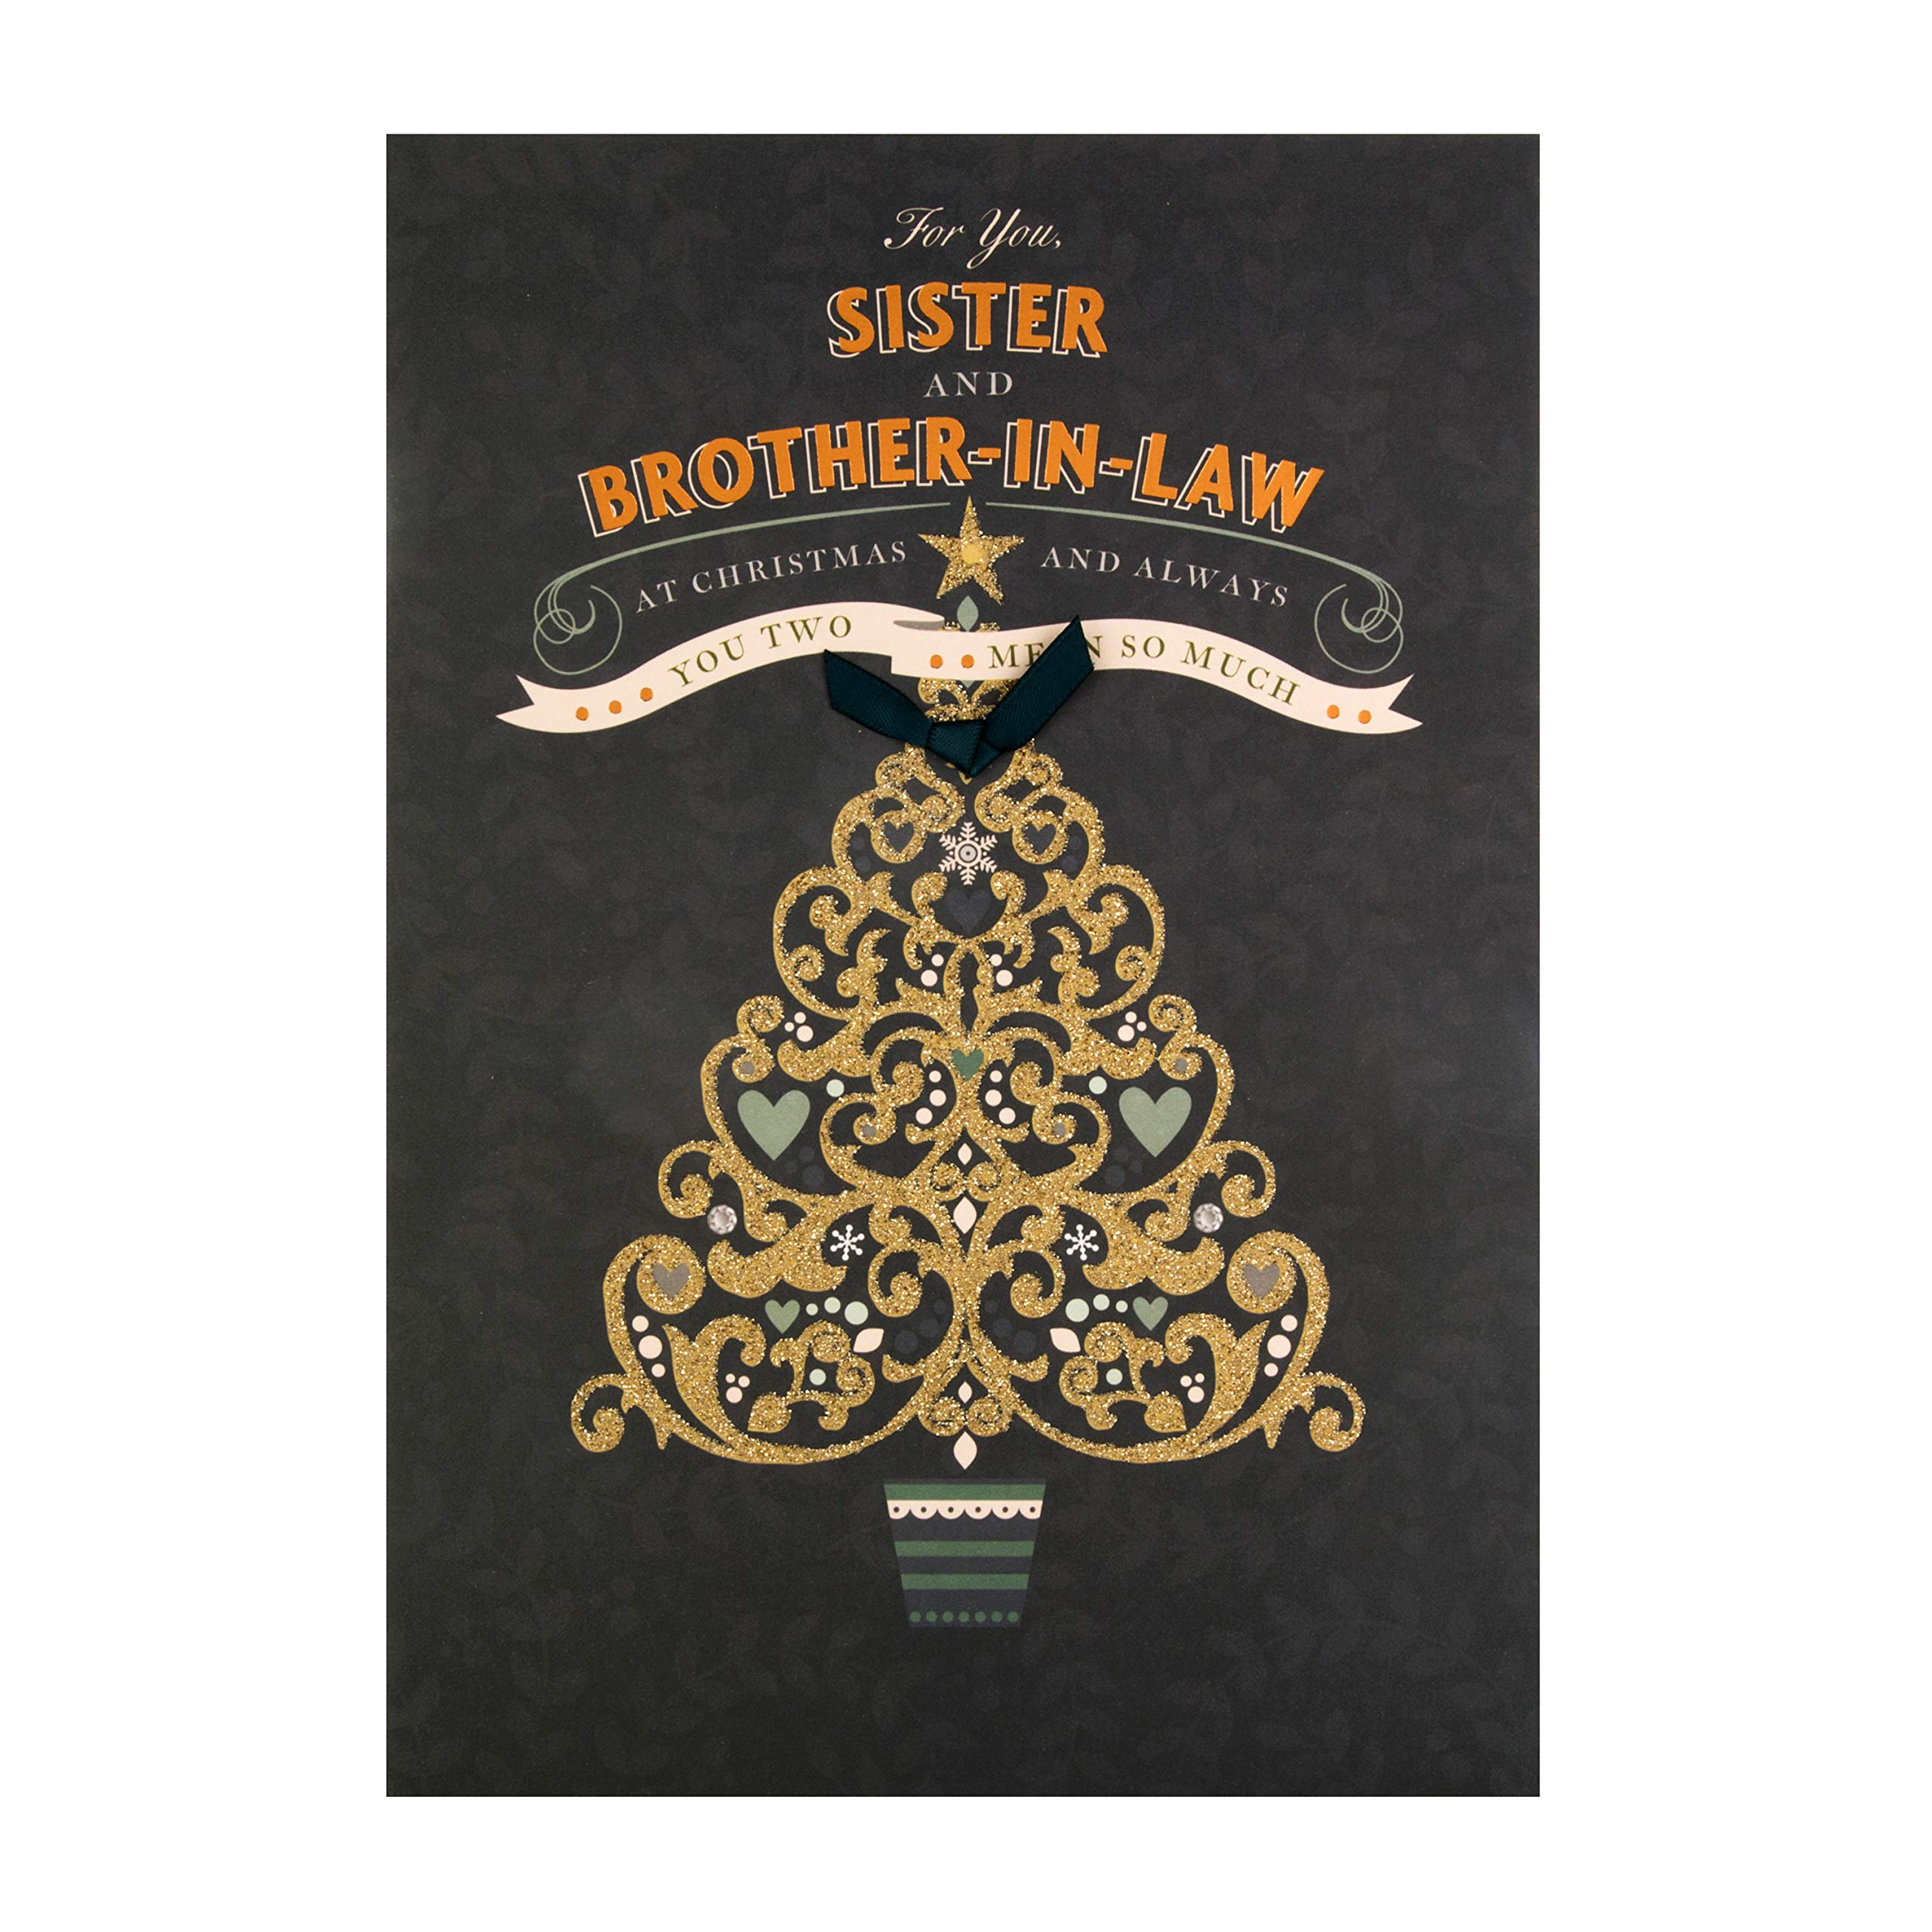 Christmas Card For Sister Brother In Law From Hallmark Gold Glitter Christmas Tree Design Buy Online In Cambodia Missing Category Value Products In Cambodia See Prices Reviews And Free